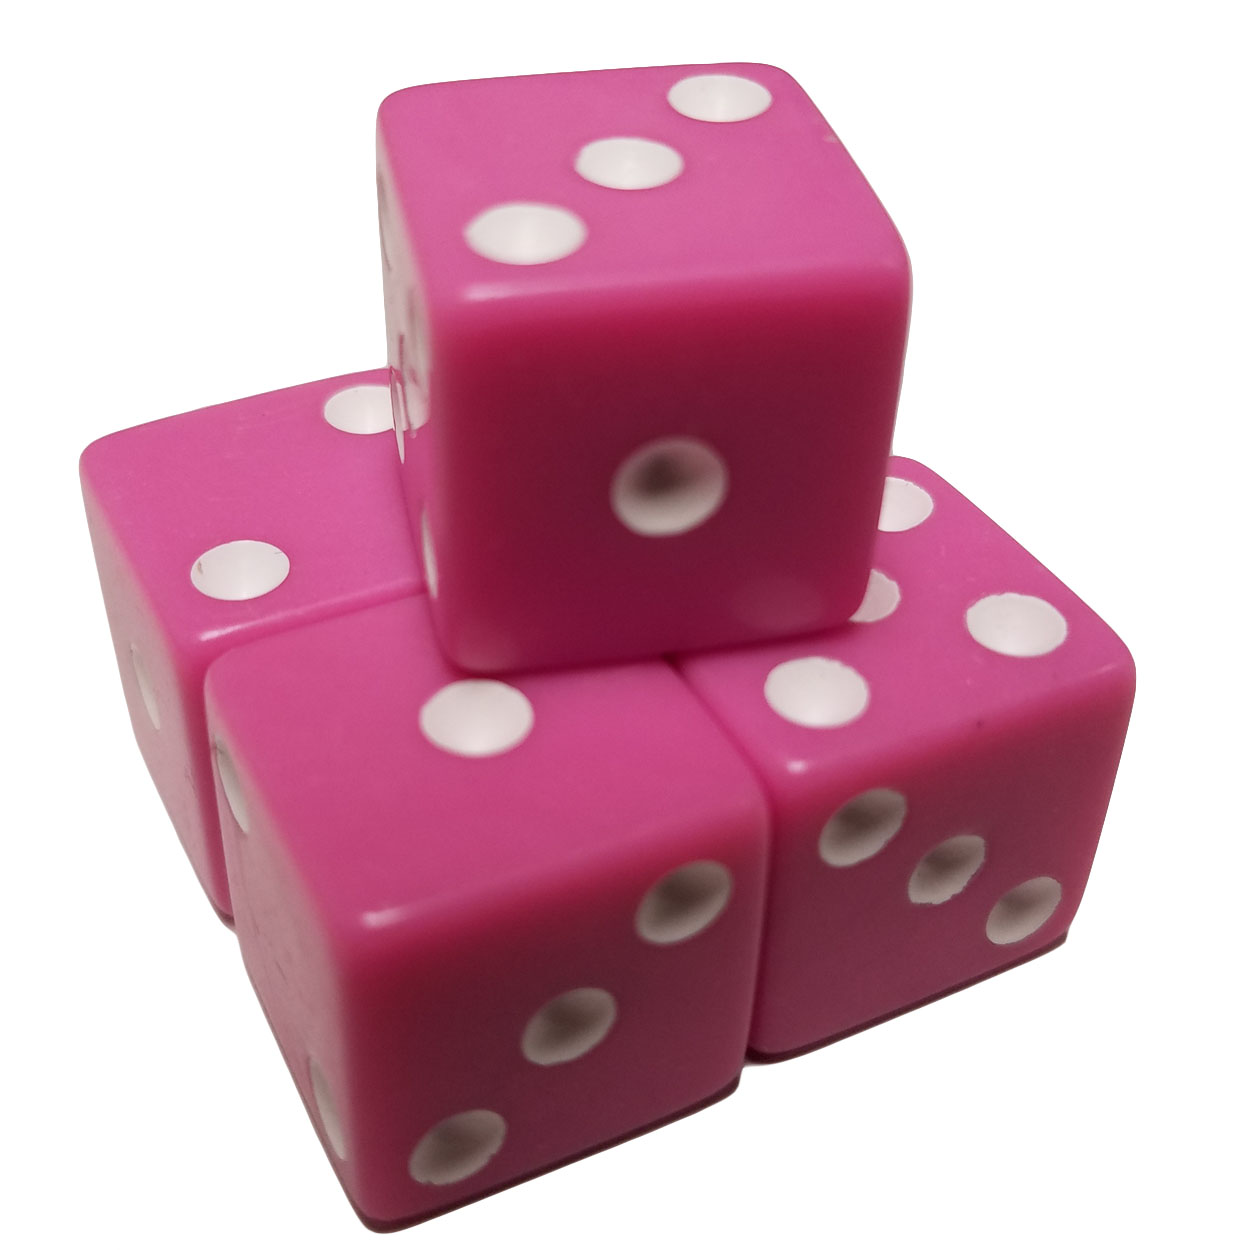 Set of 5 Pastel Purple Pink Color 6 Sided Dice Square Corner White Pips 16mm in Snow Organza Bag